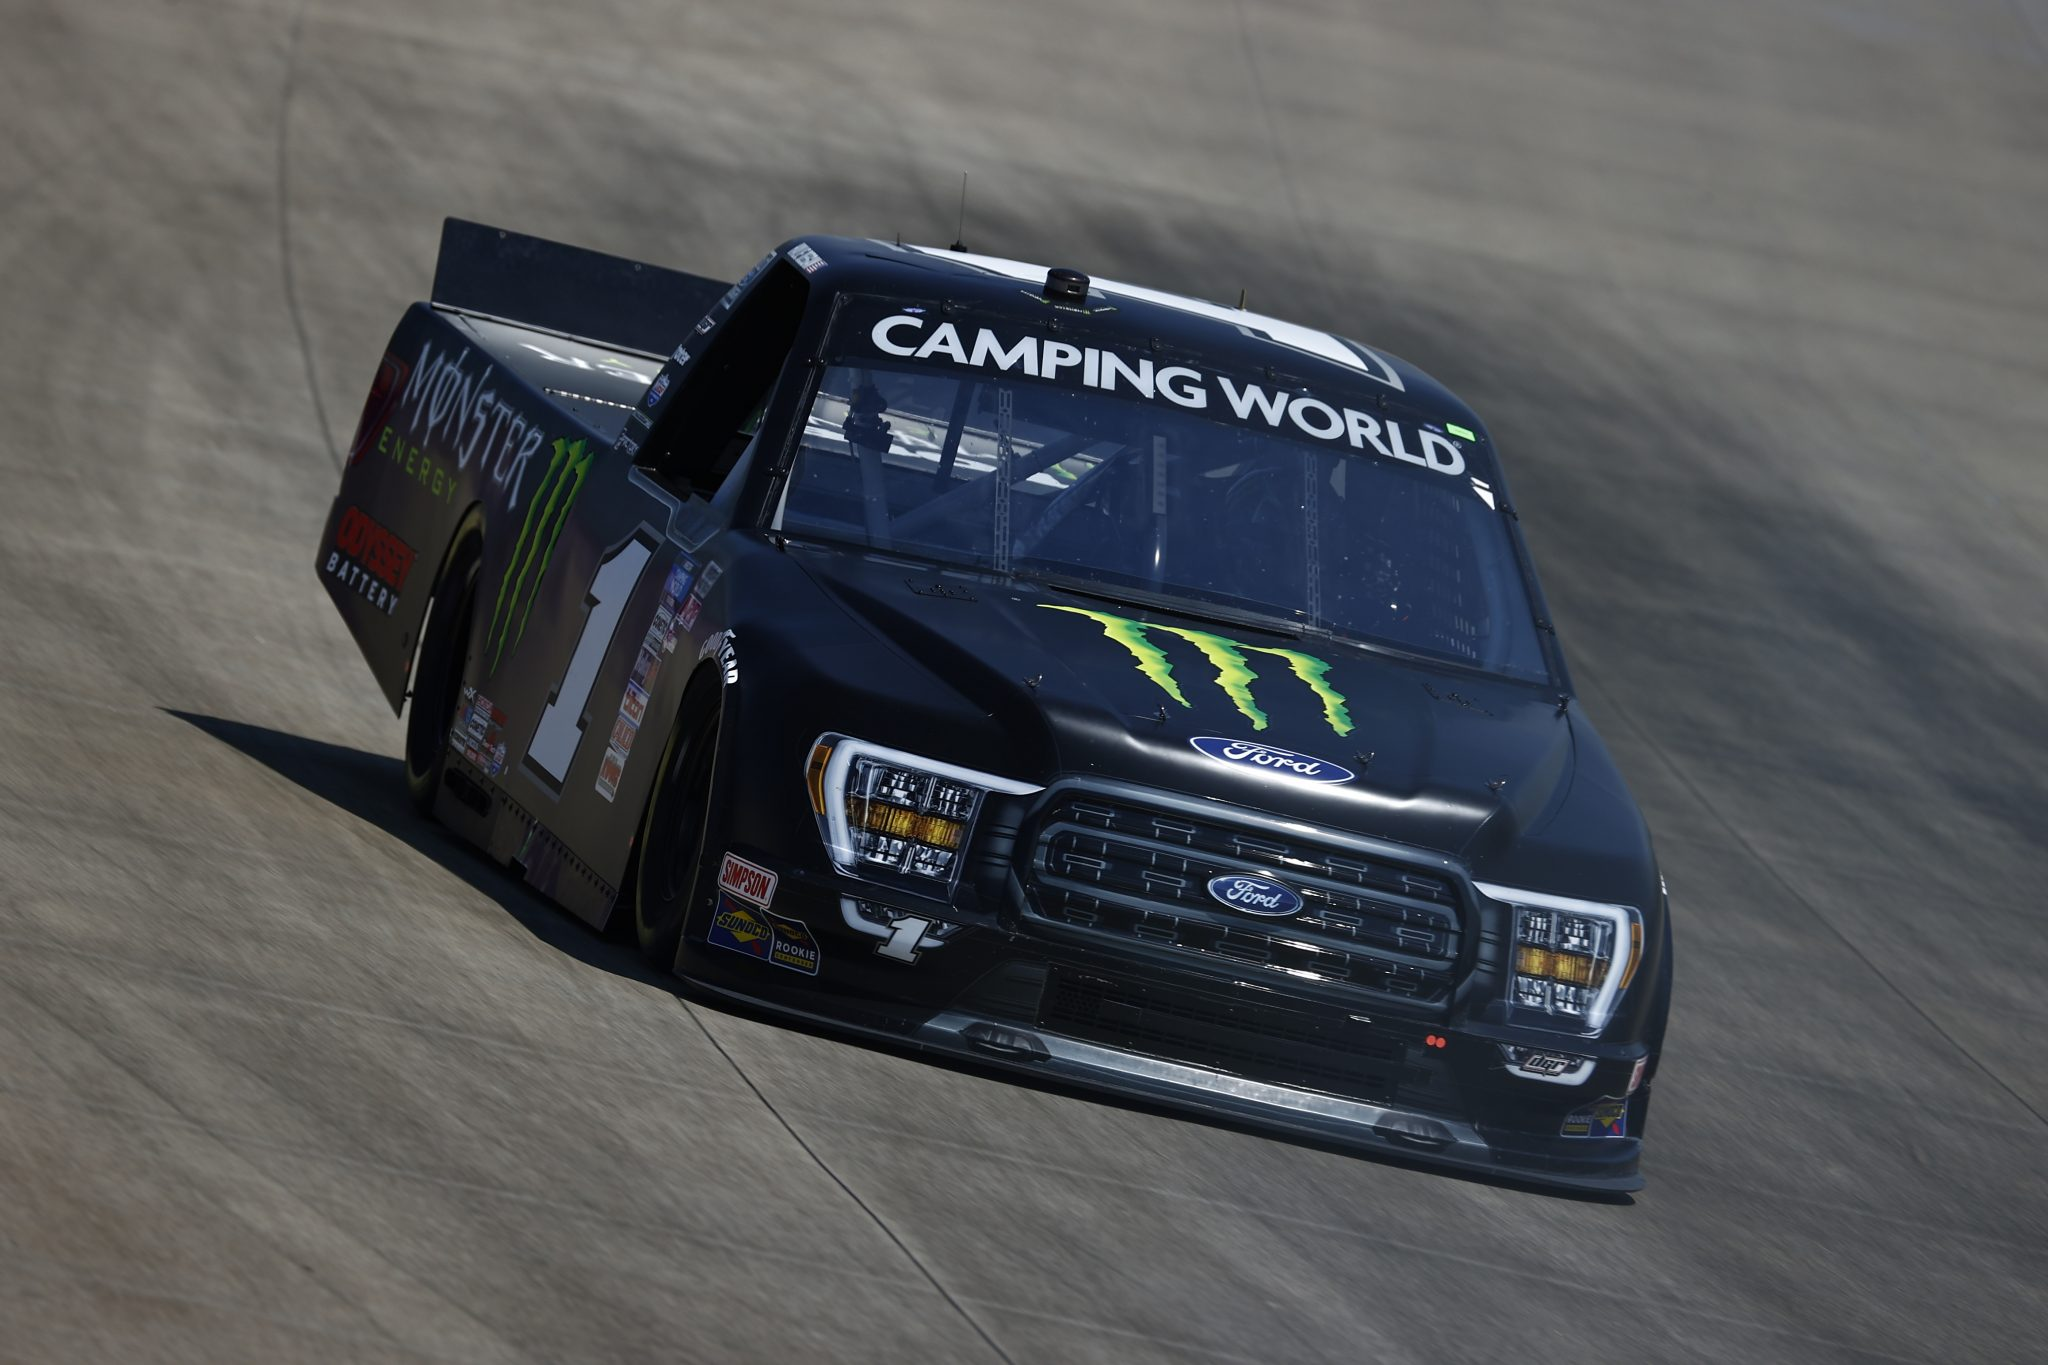 LEBANON, TENNESSEE - JUNE 18: Hailie Deegan, driver of the #1 Monster Ford, drives during practice for the NASCAR Camping World Truck Series Rackley Roofing 200 at Nashville Superspeedway on June 18, 2021 in Lebanon, Tennessee. (Photo by Jared C. Tilton/Getty Images) | Getty Images